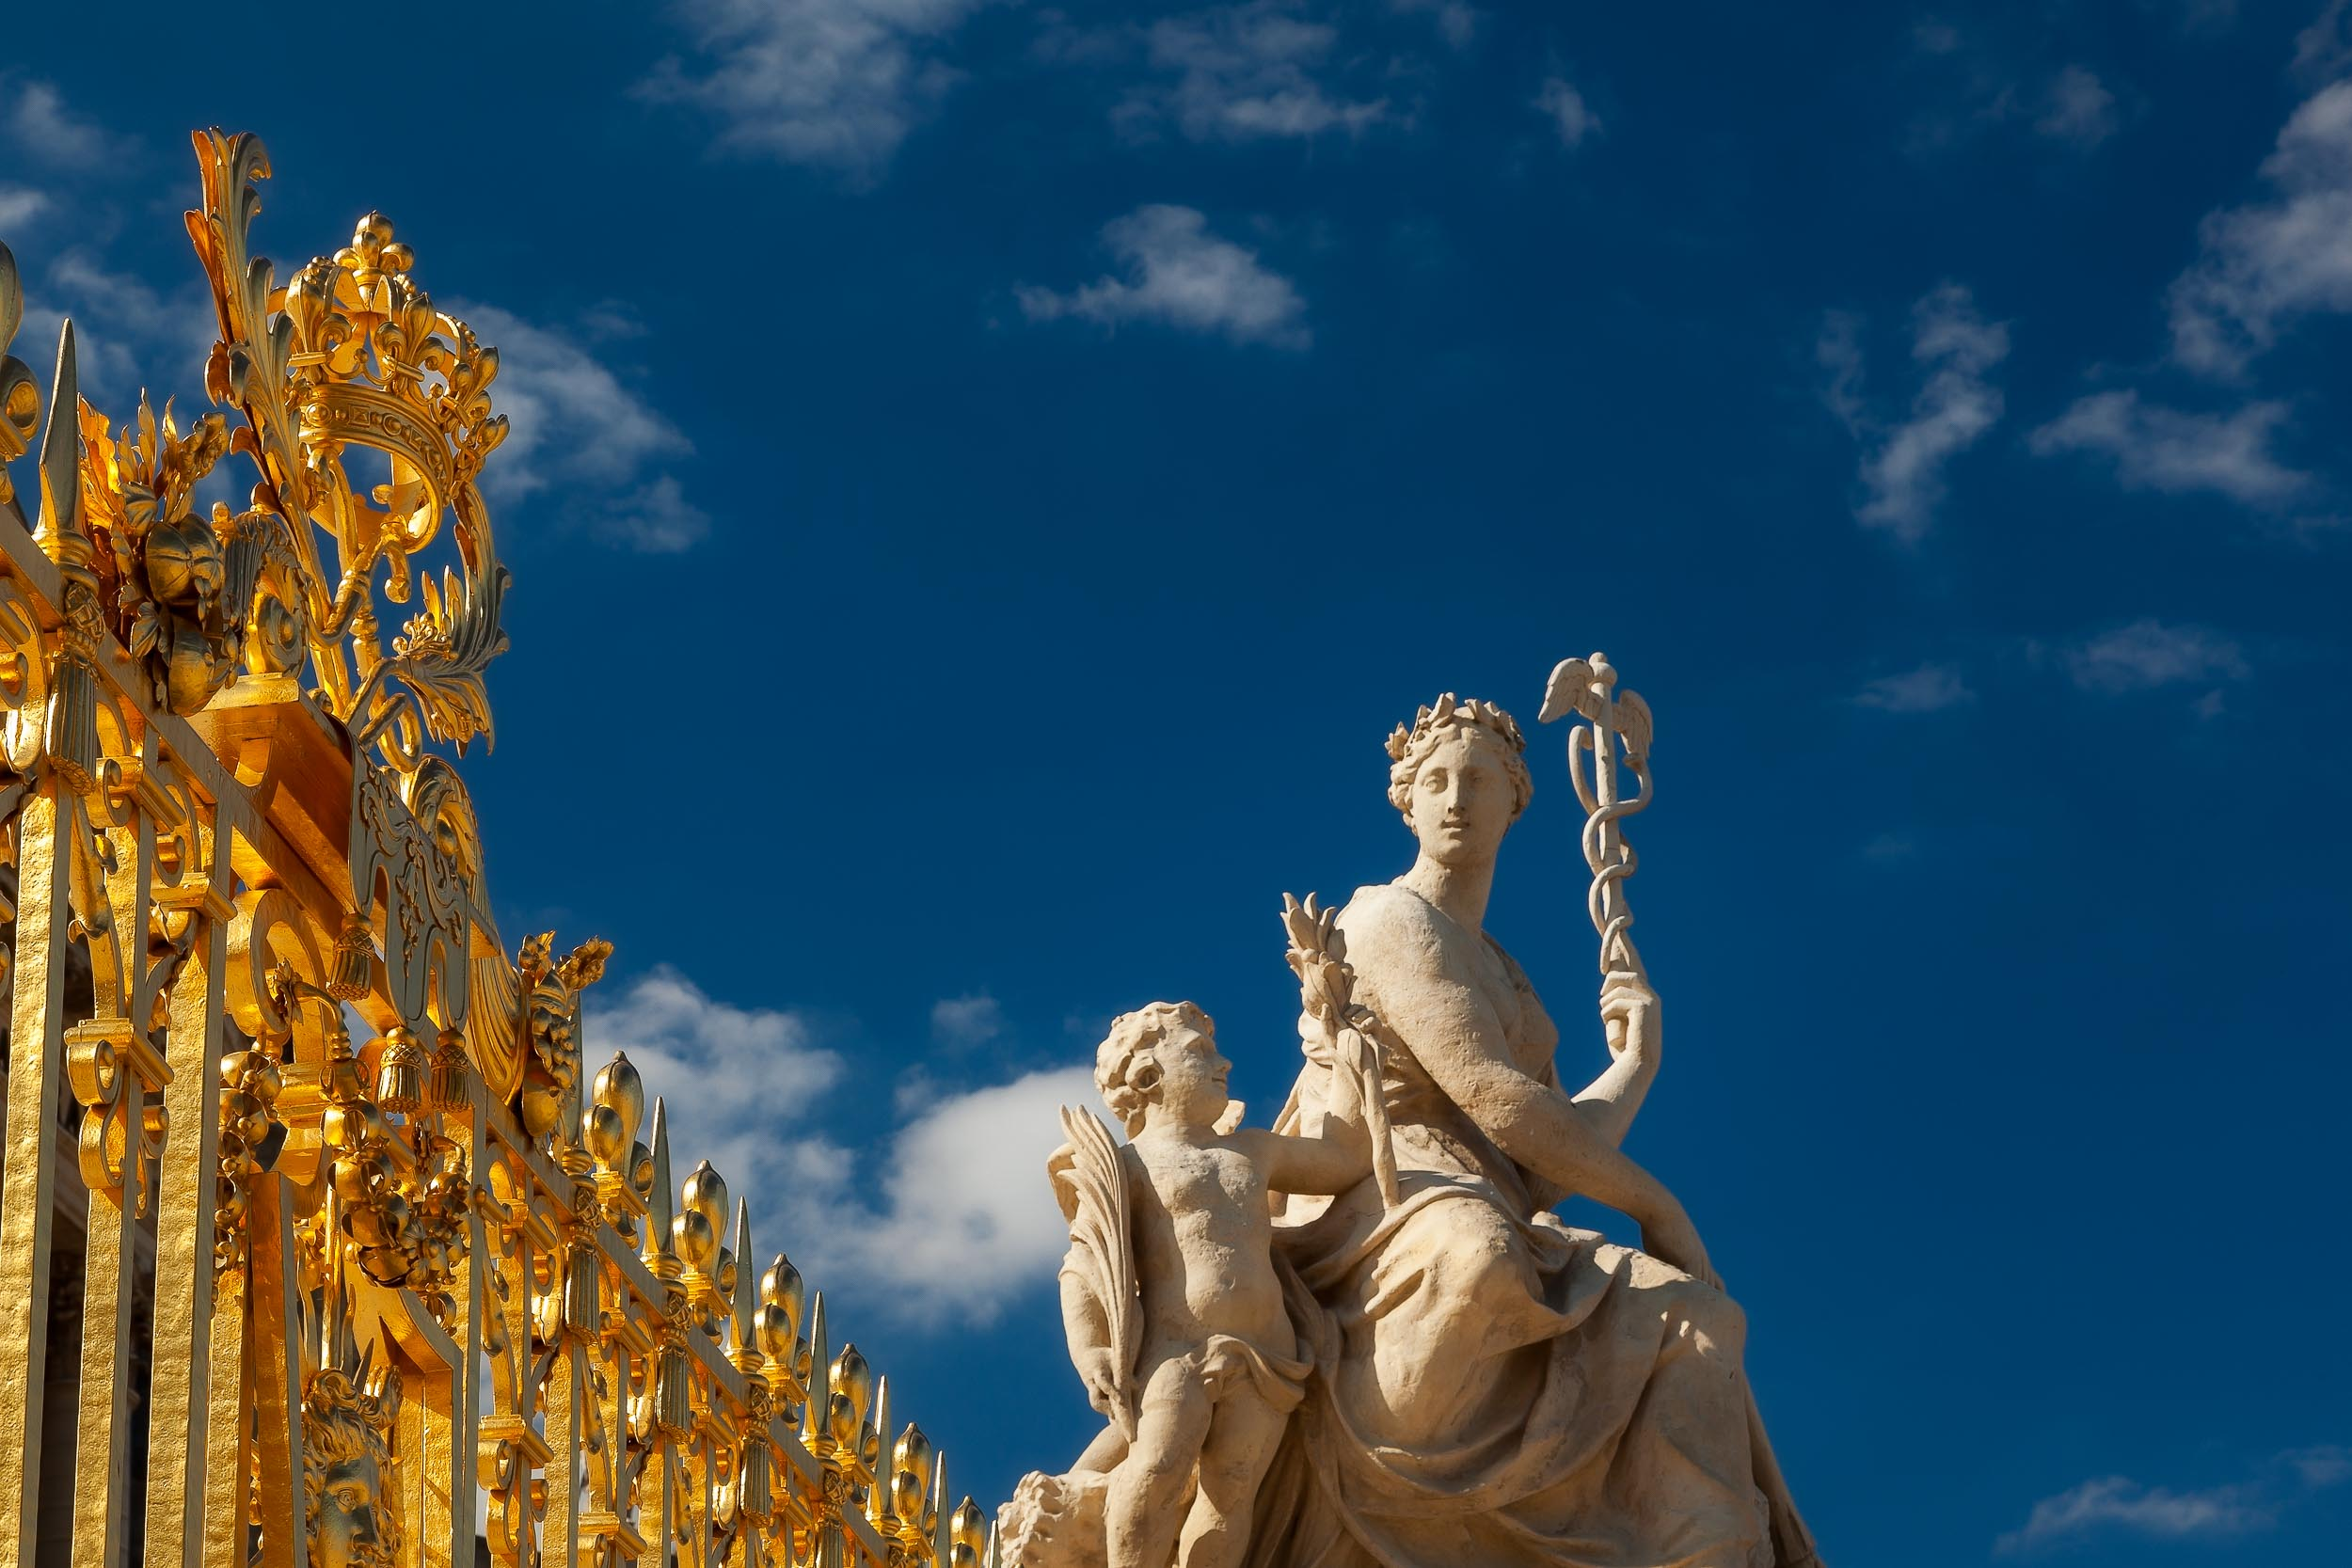 Striking light illuminates    statues    and the    golden gate    at the    Palace of Versailles, France   .